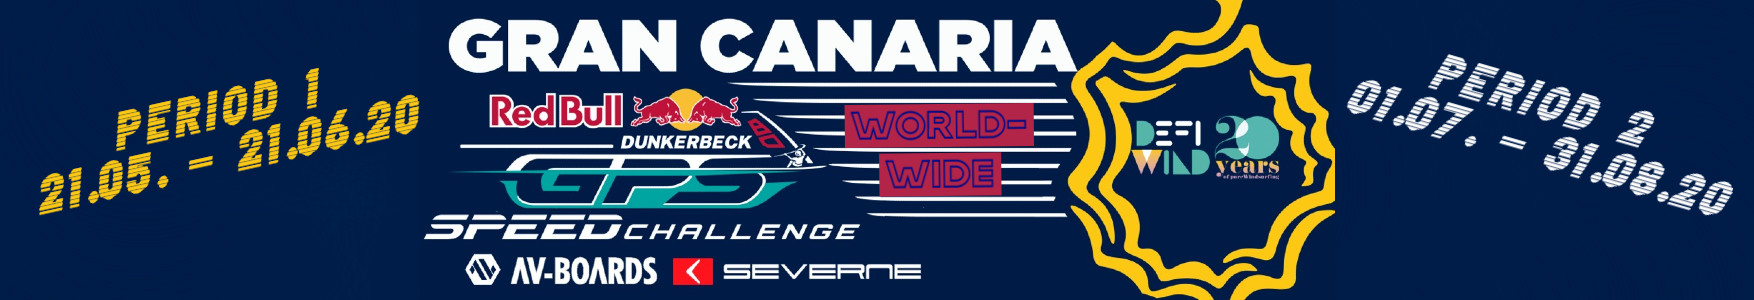 gran canaria dunkerbeck speed challenge